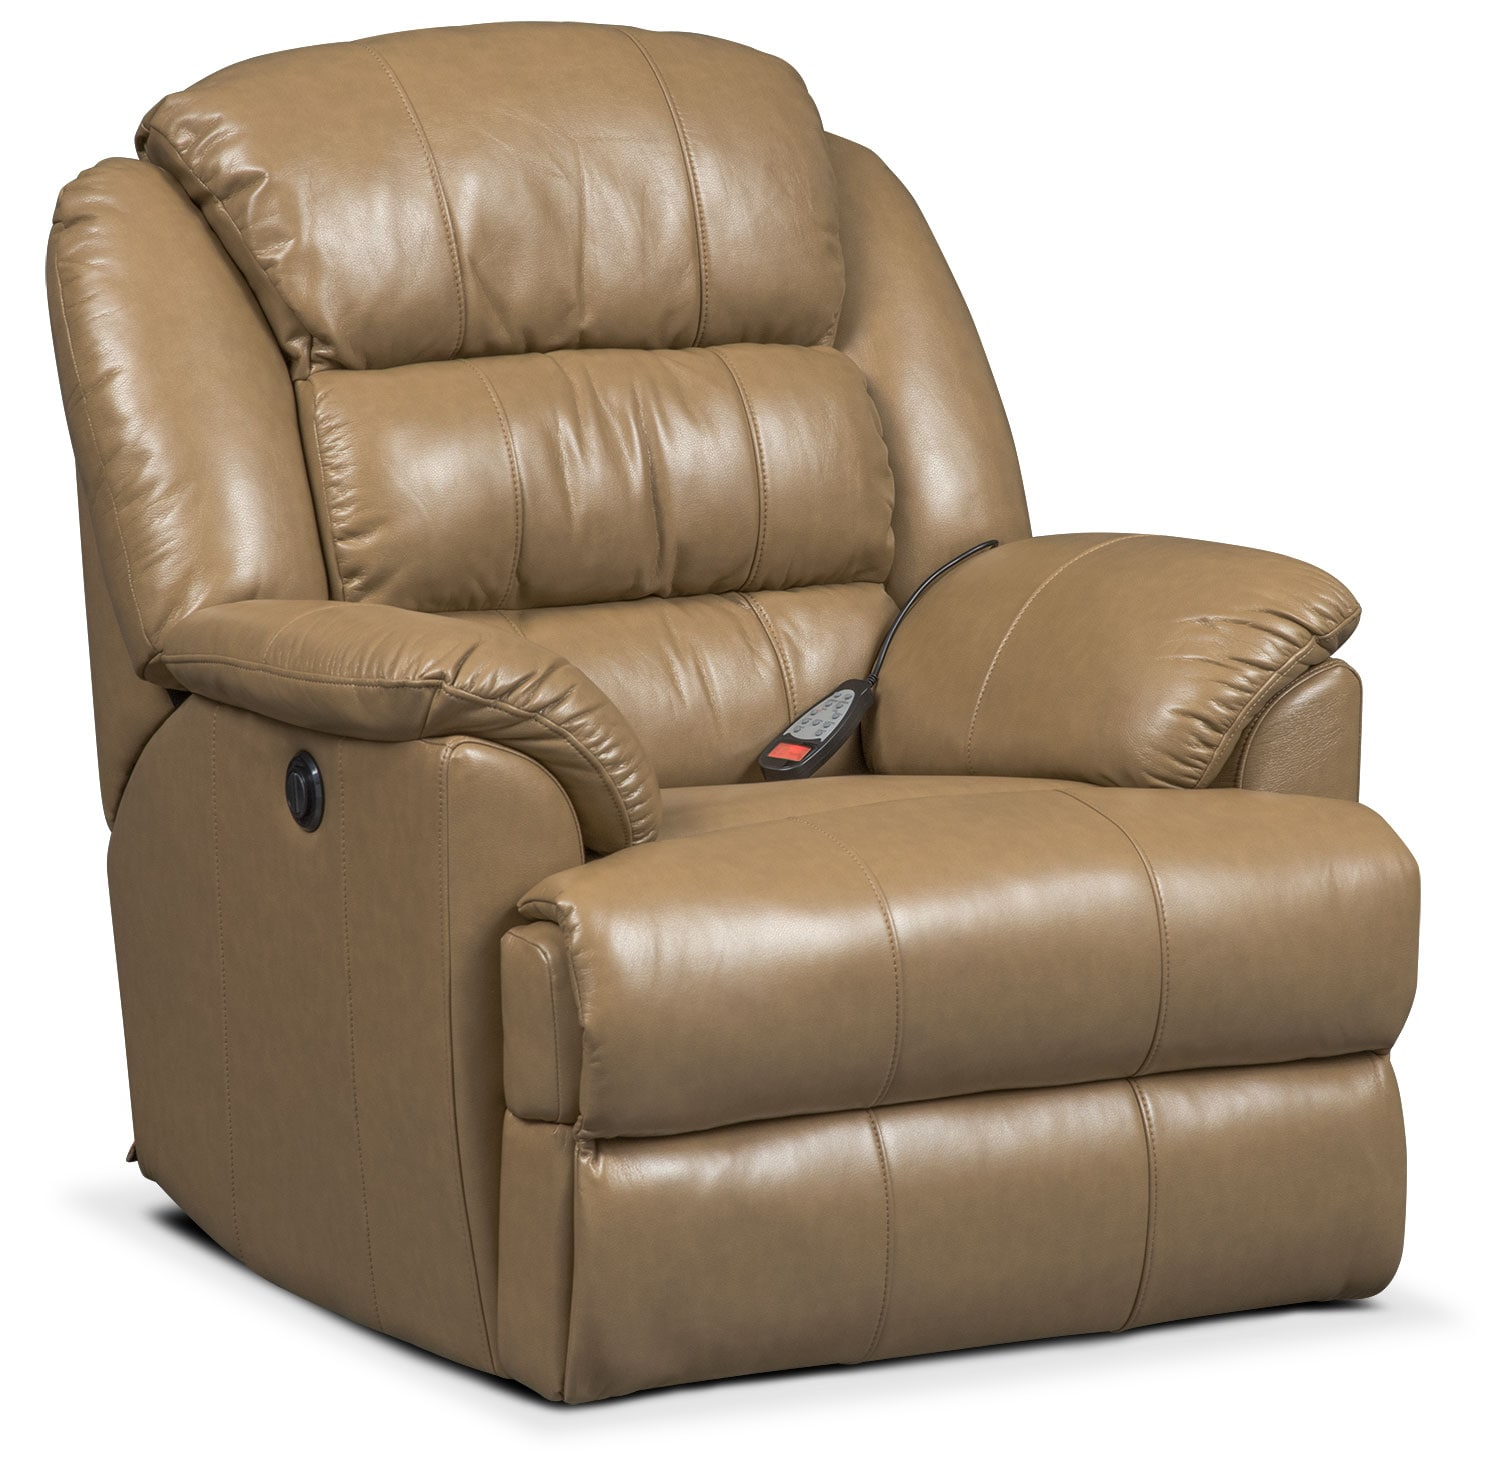 Garrett Power Massage Recliner - Taupe